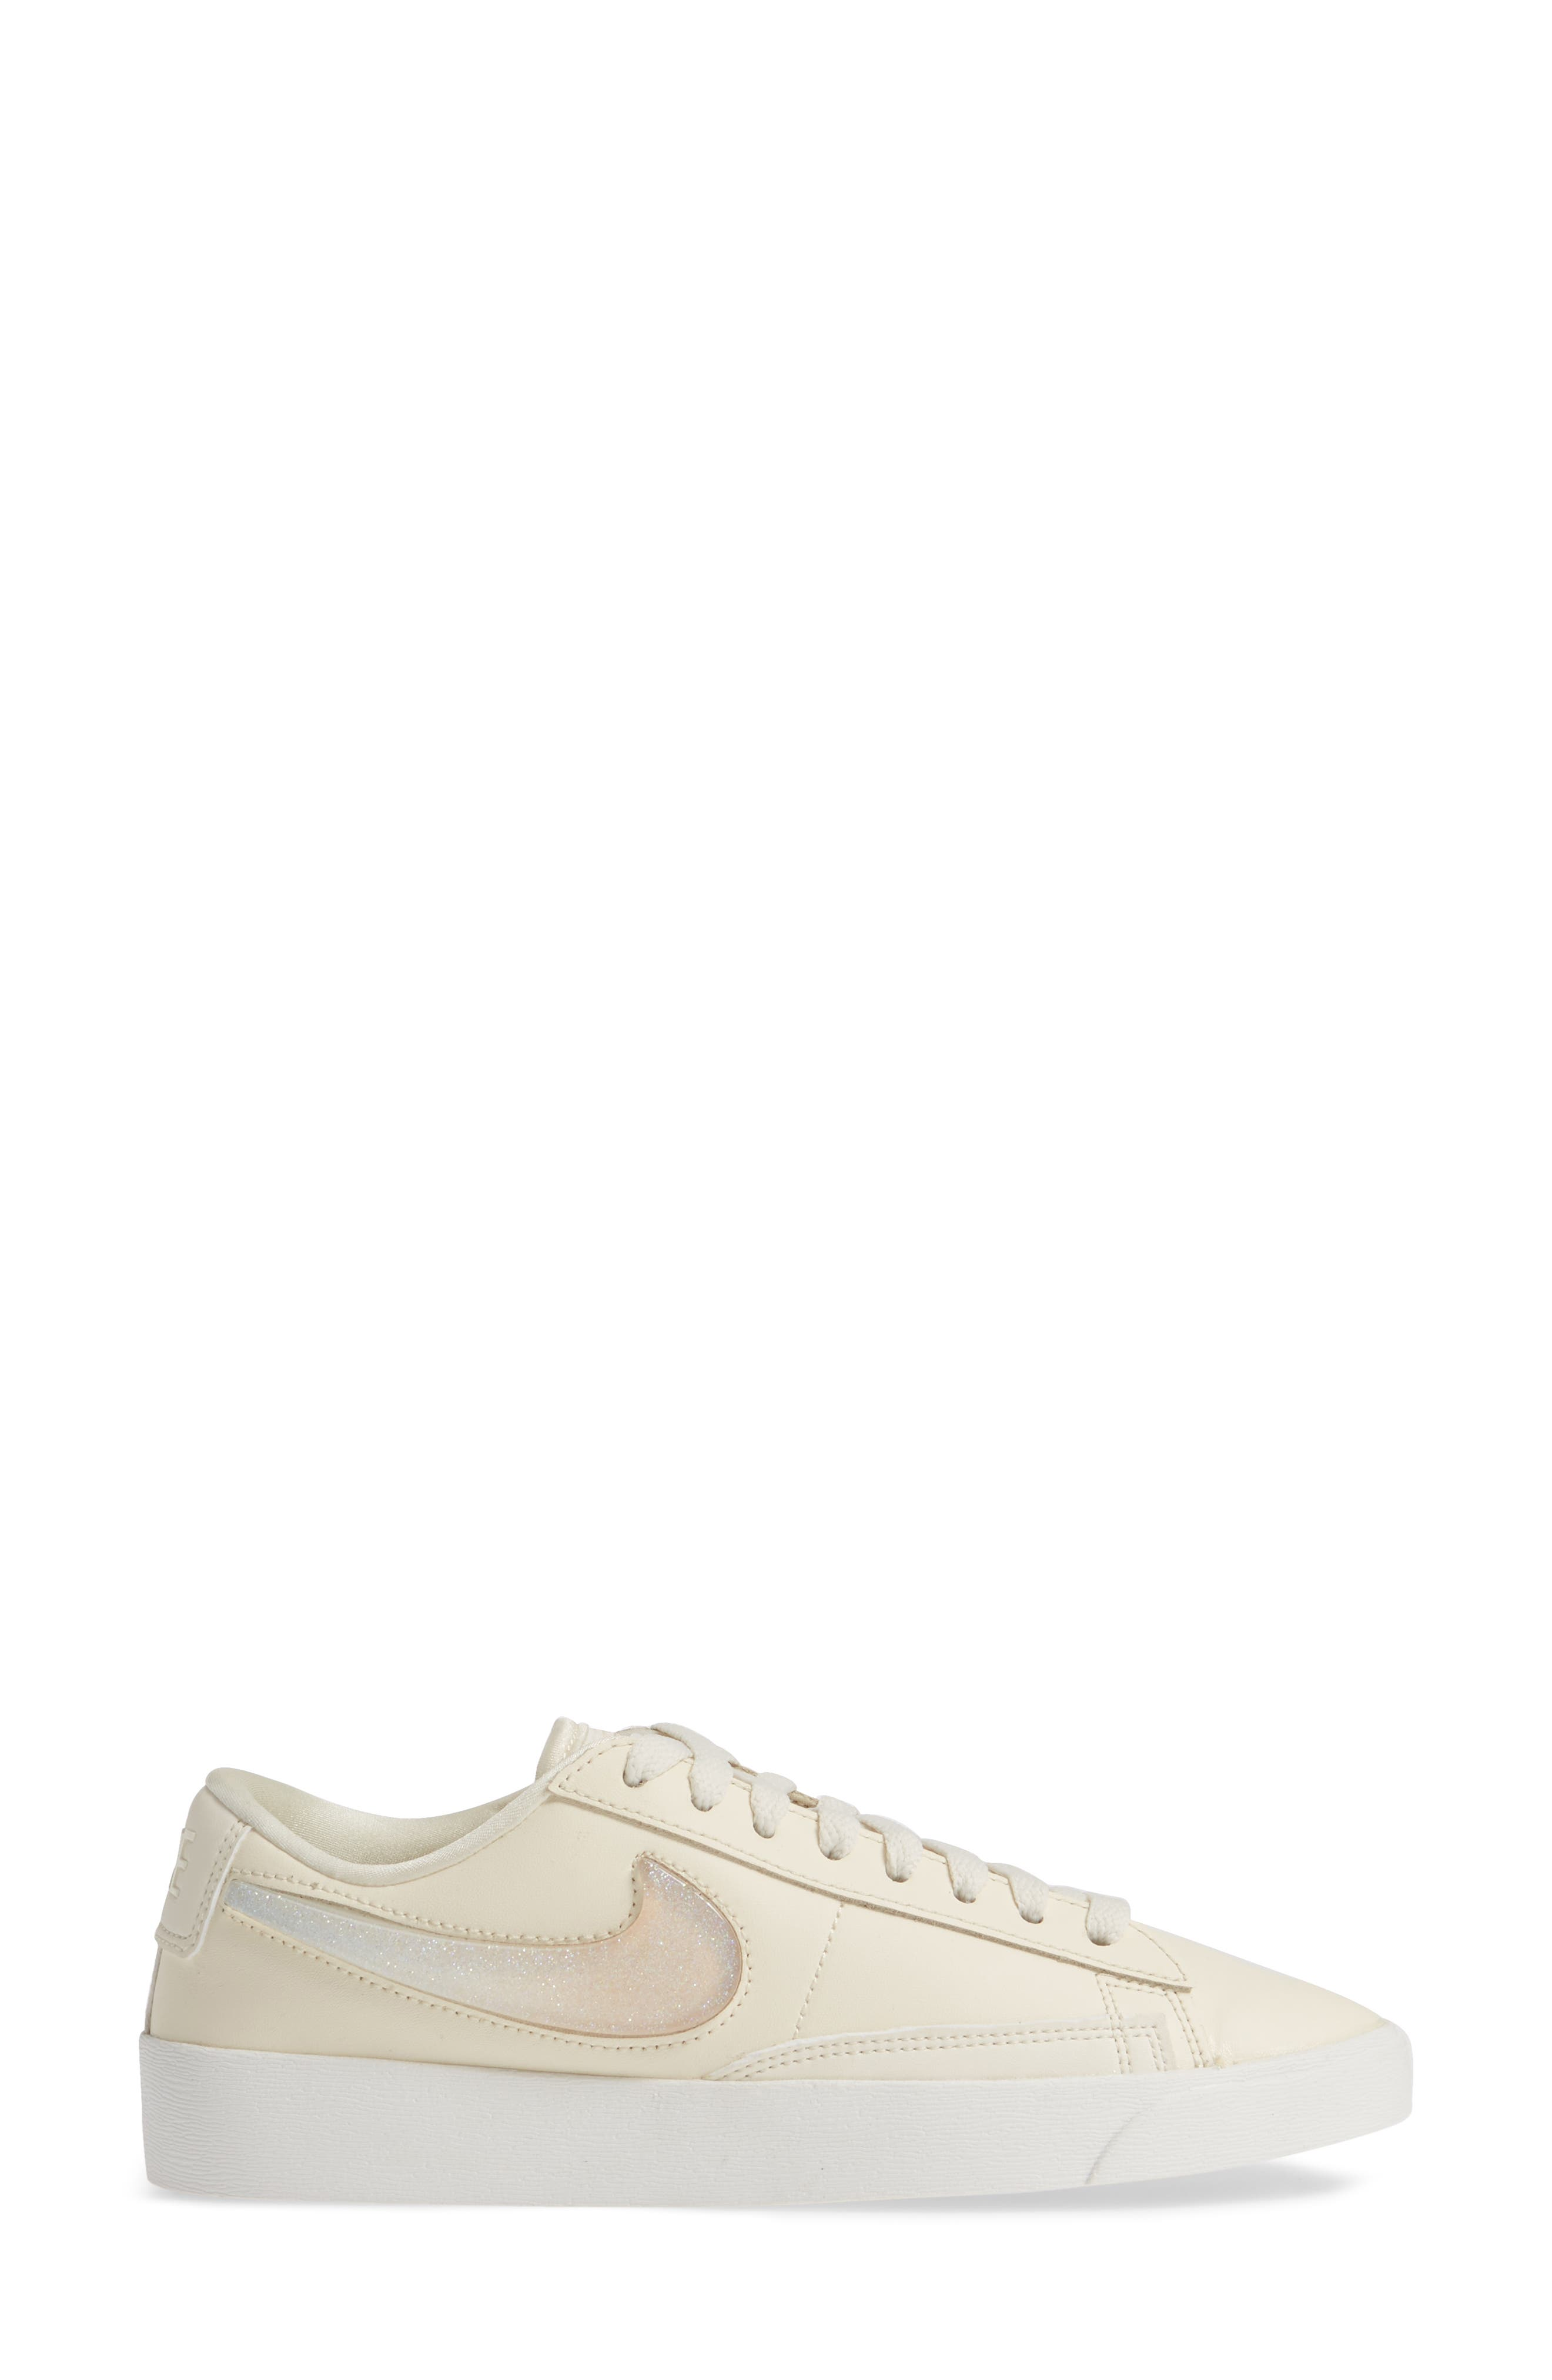 ,                             Blazer Low LX Sneaker,                             Alternate thumbnail 3, color,                             PALE IVORY/ GUAVA ICE/ WHITE